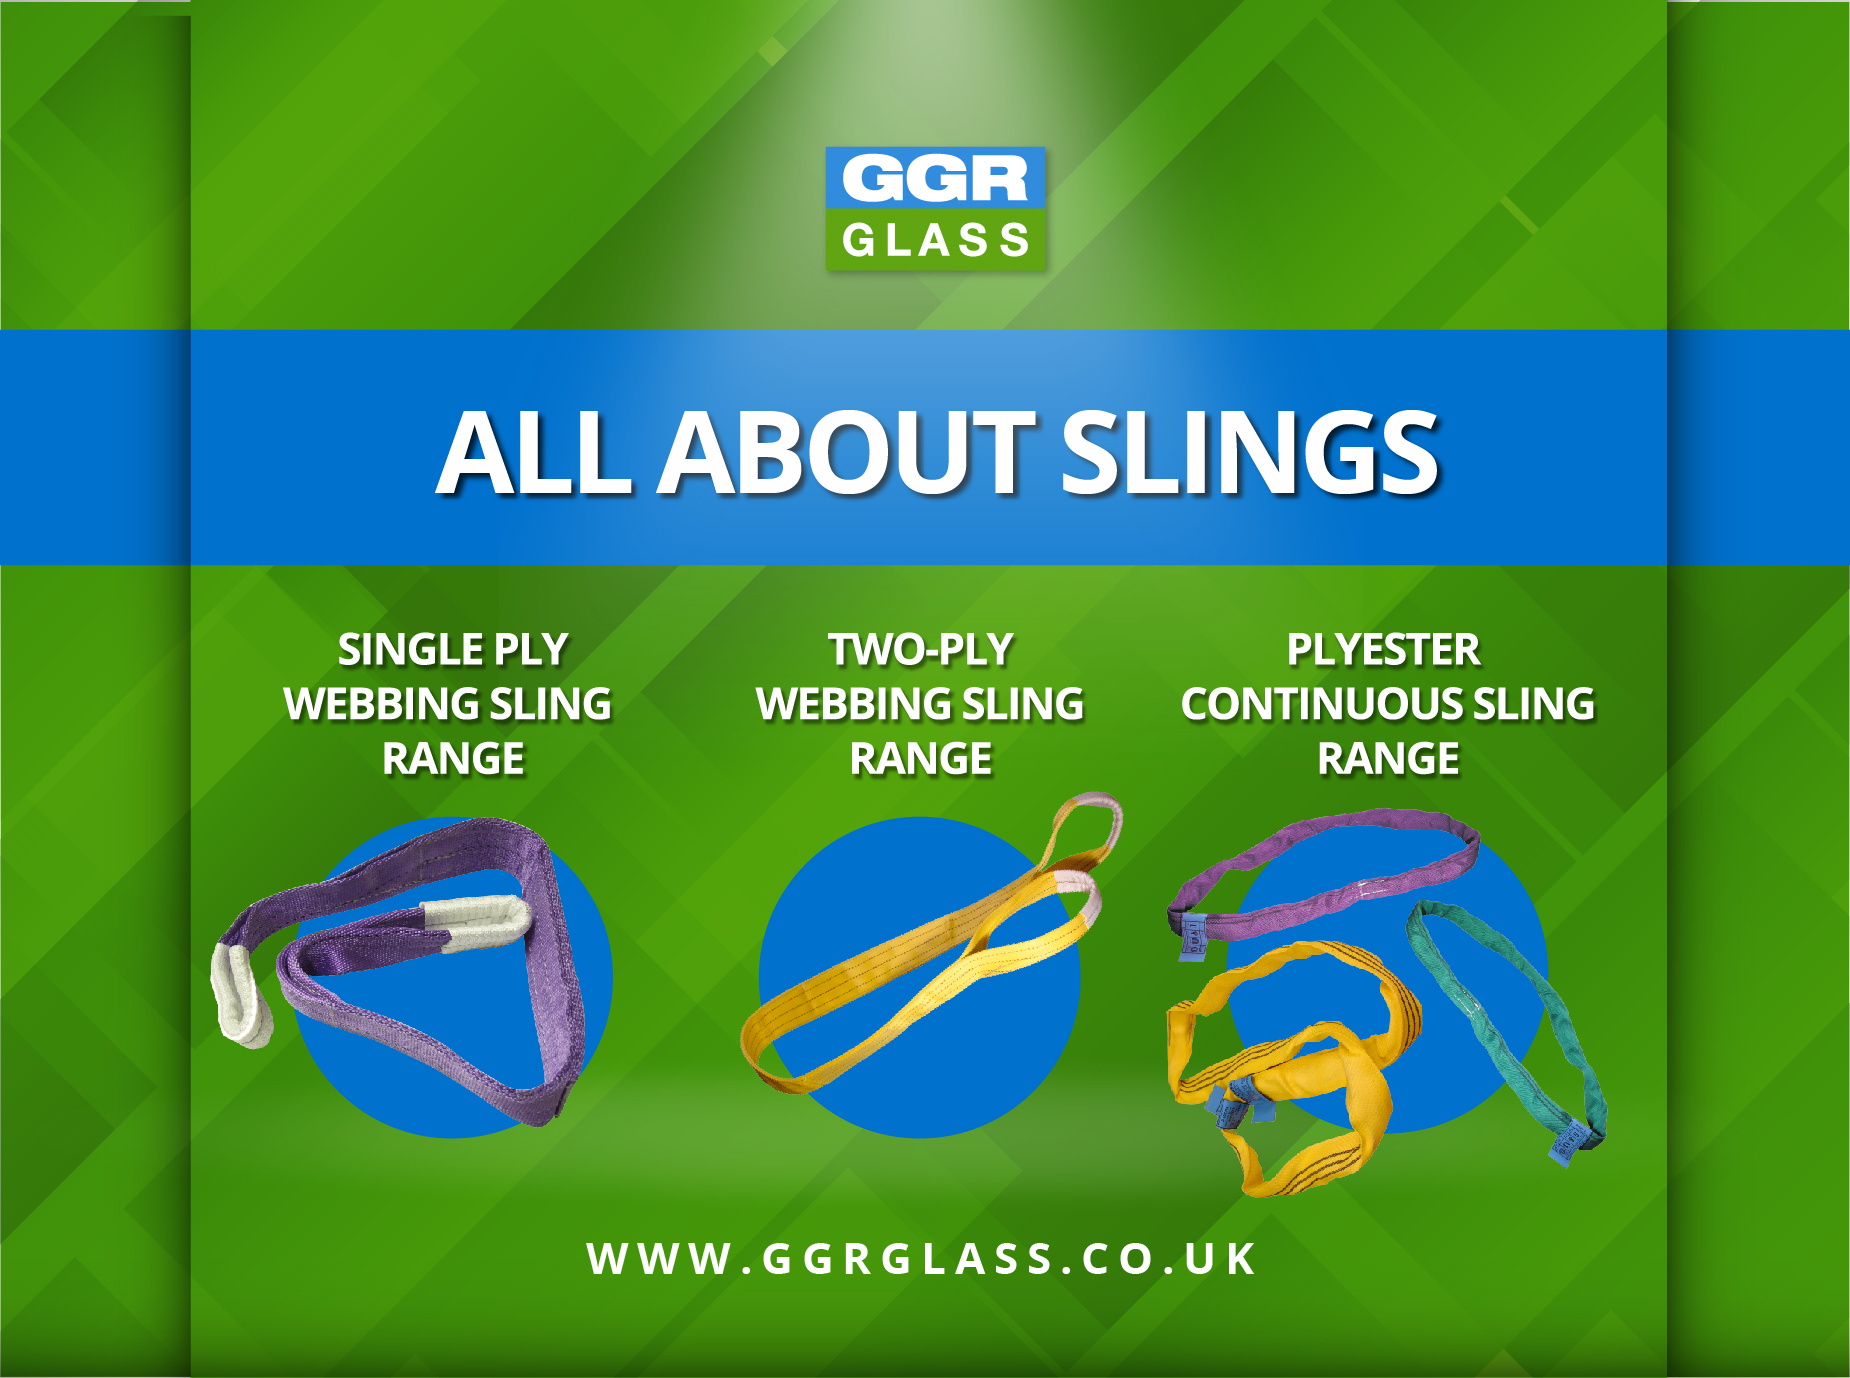 All About Slings